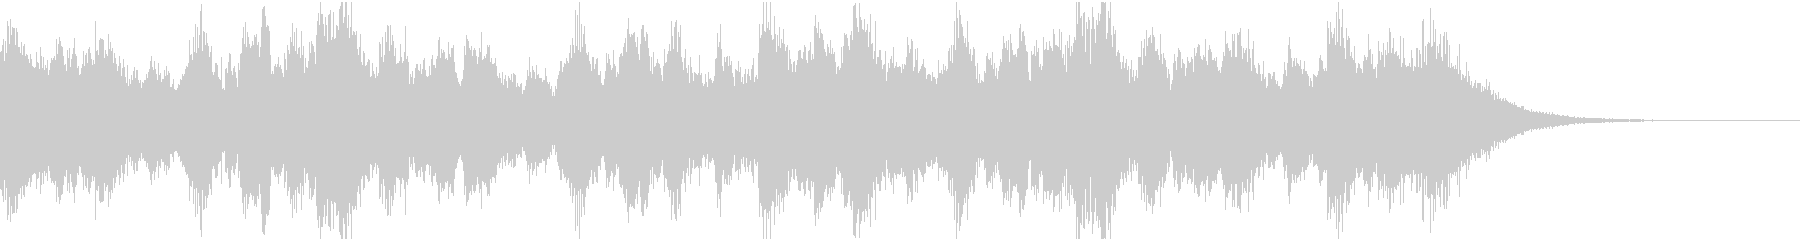 Bright cheerful cute ornate orchestra b's unreproduced waveform